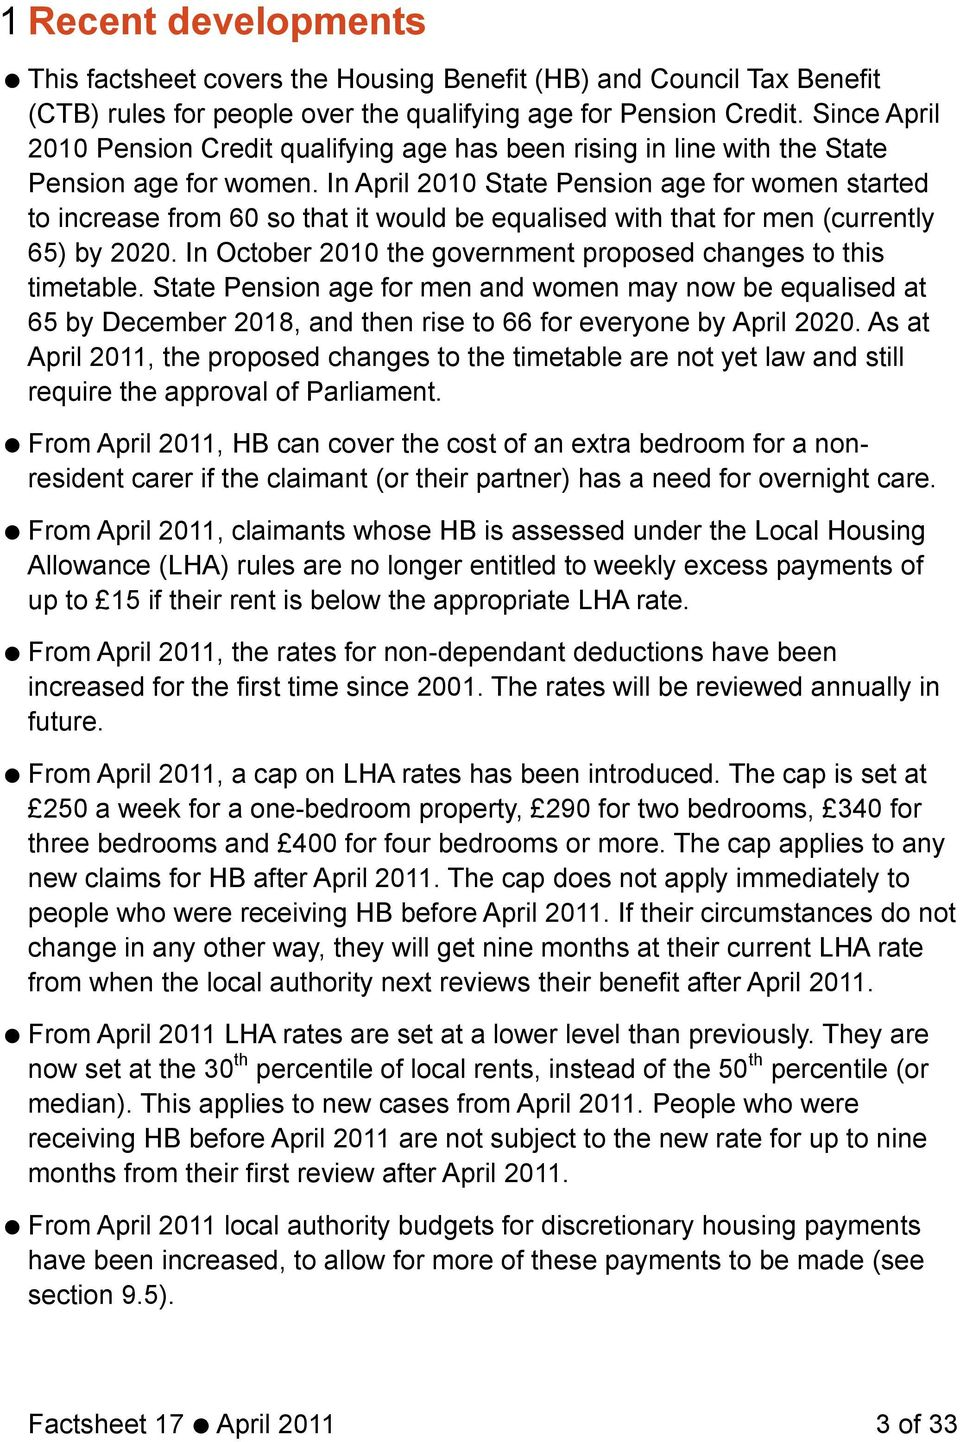 In April 2010 State Pension age for women started to increase from 60 so that it would be equalised with that for men (currently 65) by 2020.